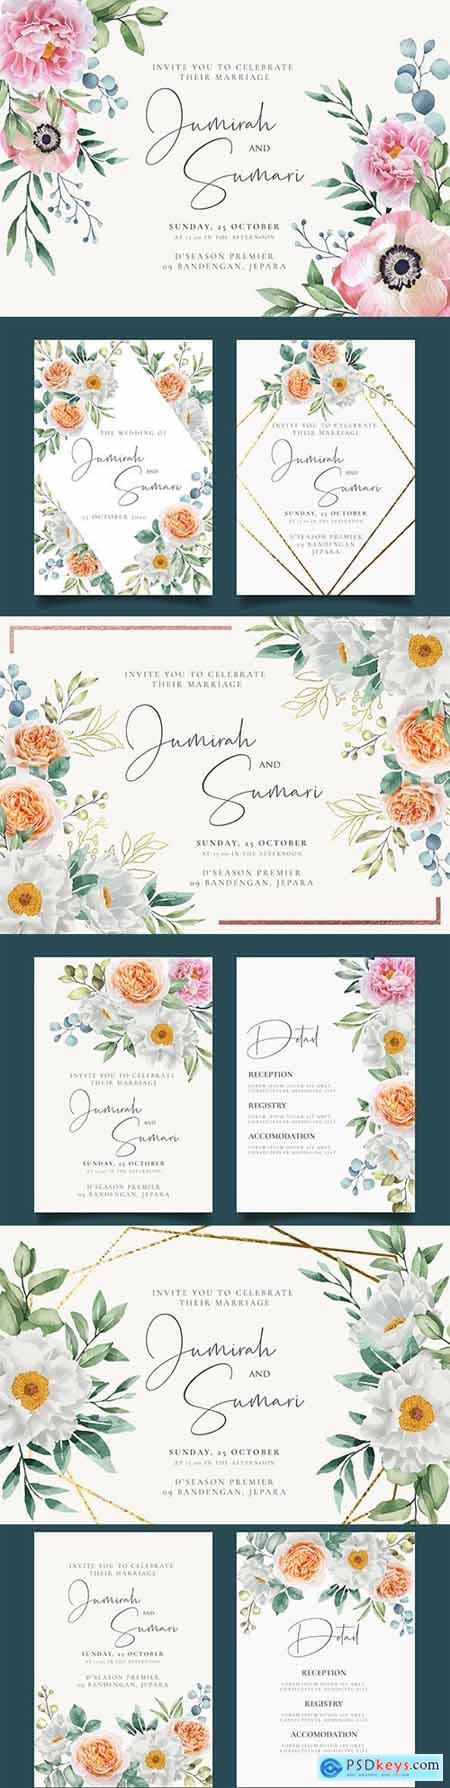 Elegant wedding invitation with floral watercolour background